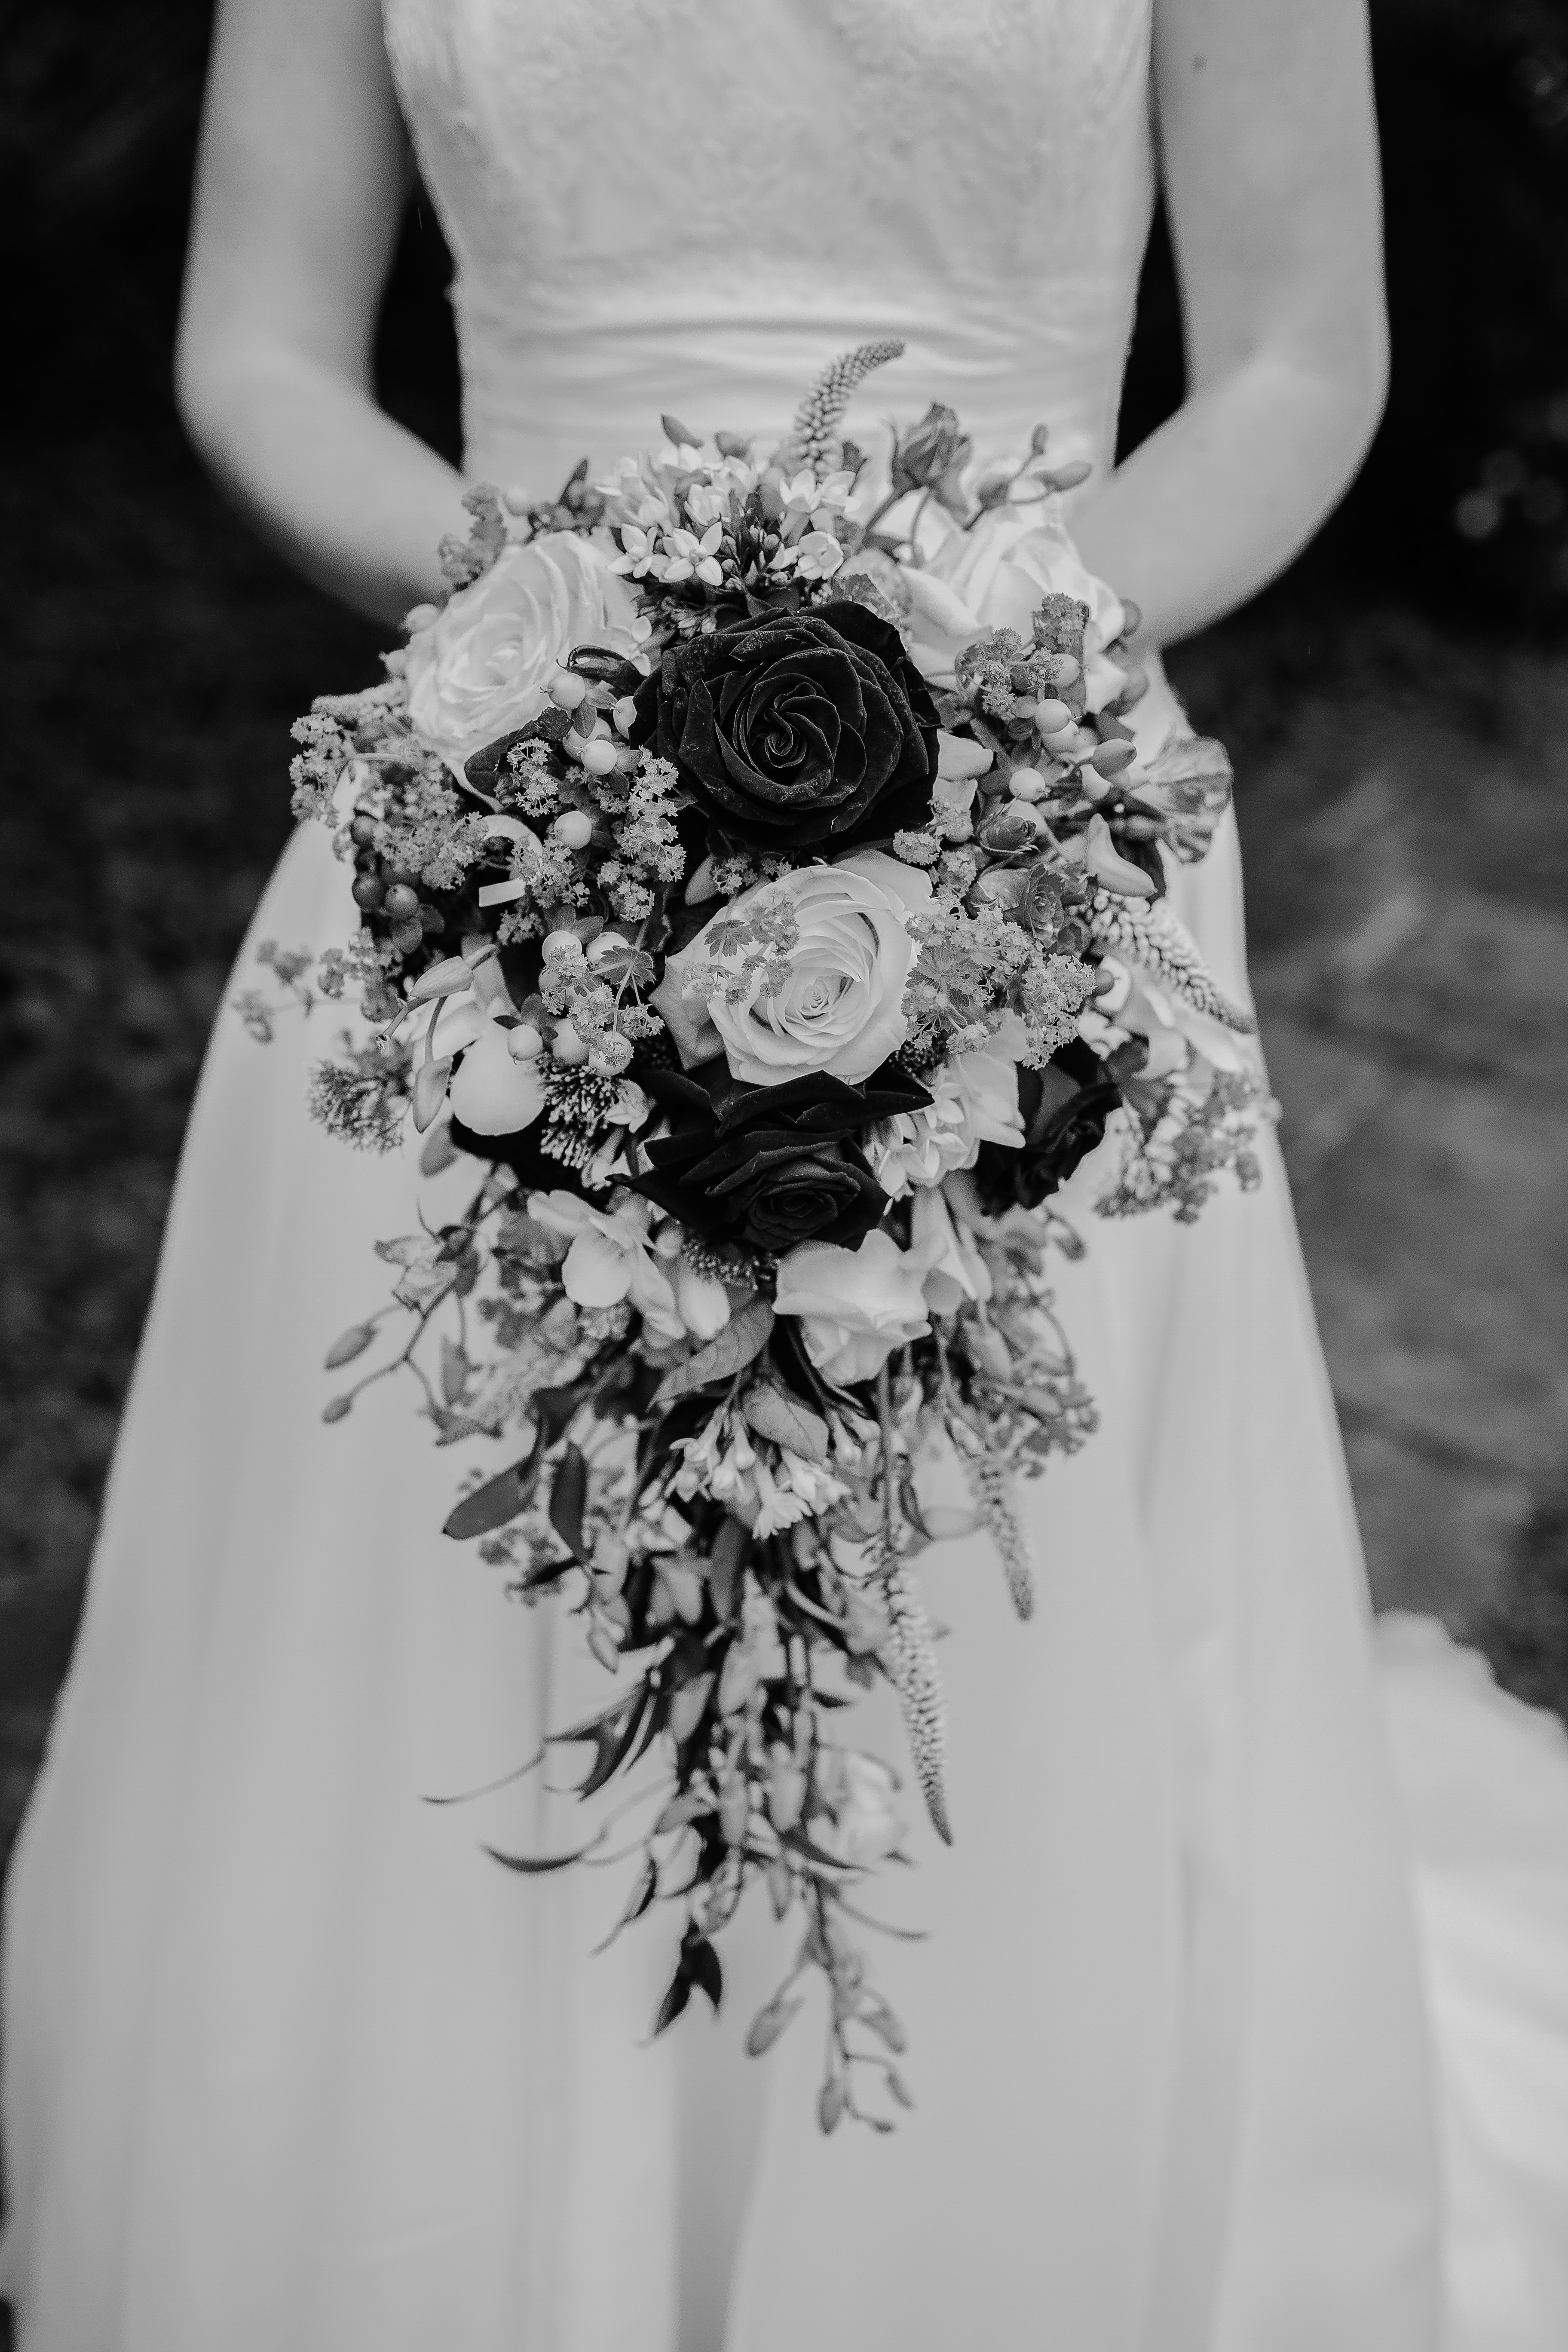 grayscale photography of woman in wedding gown